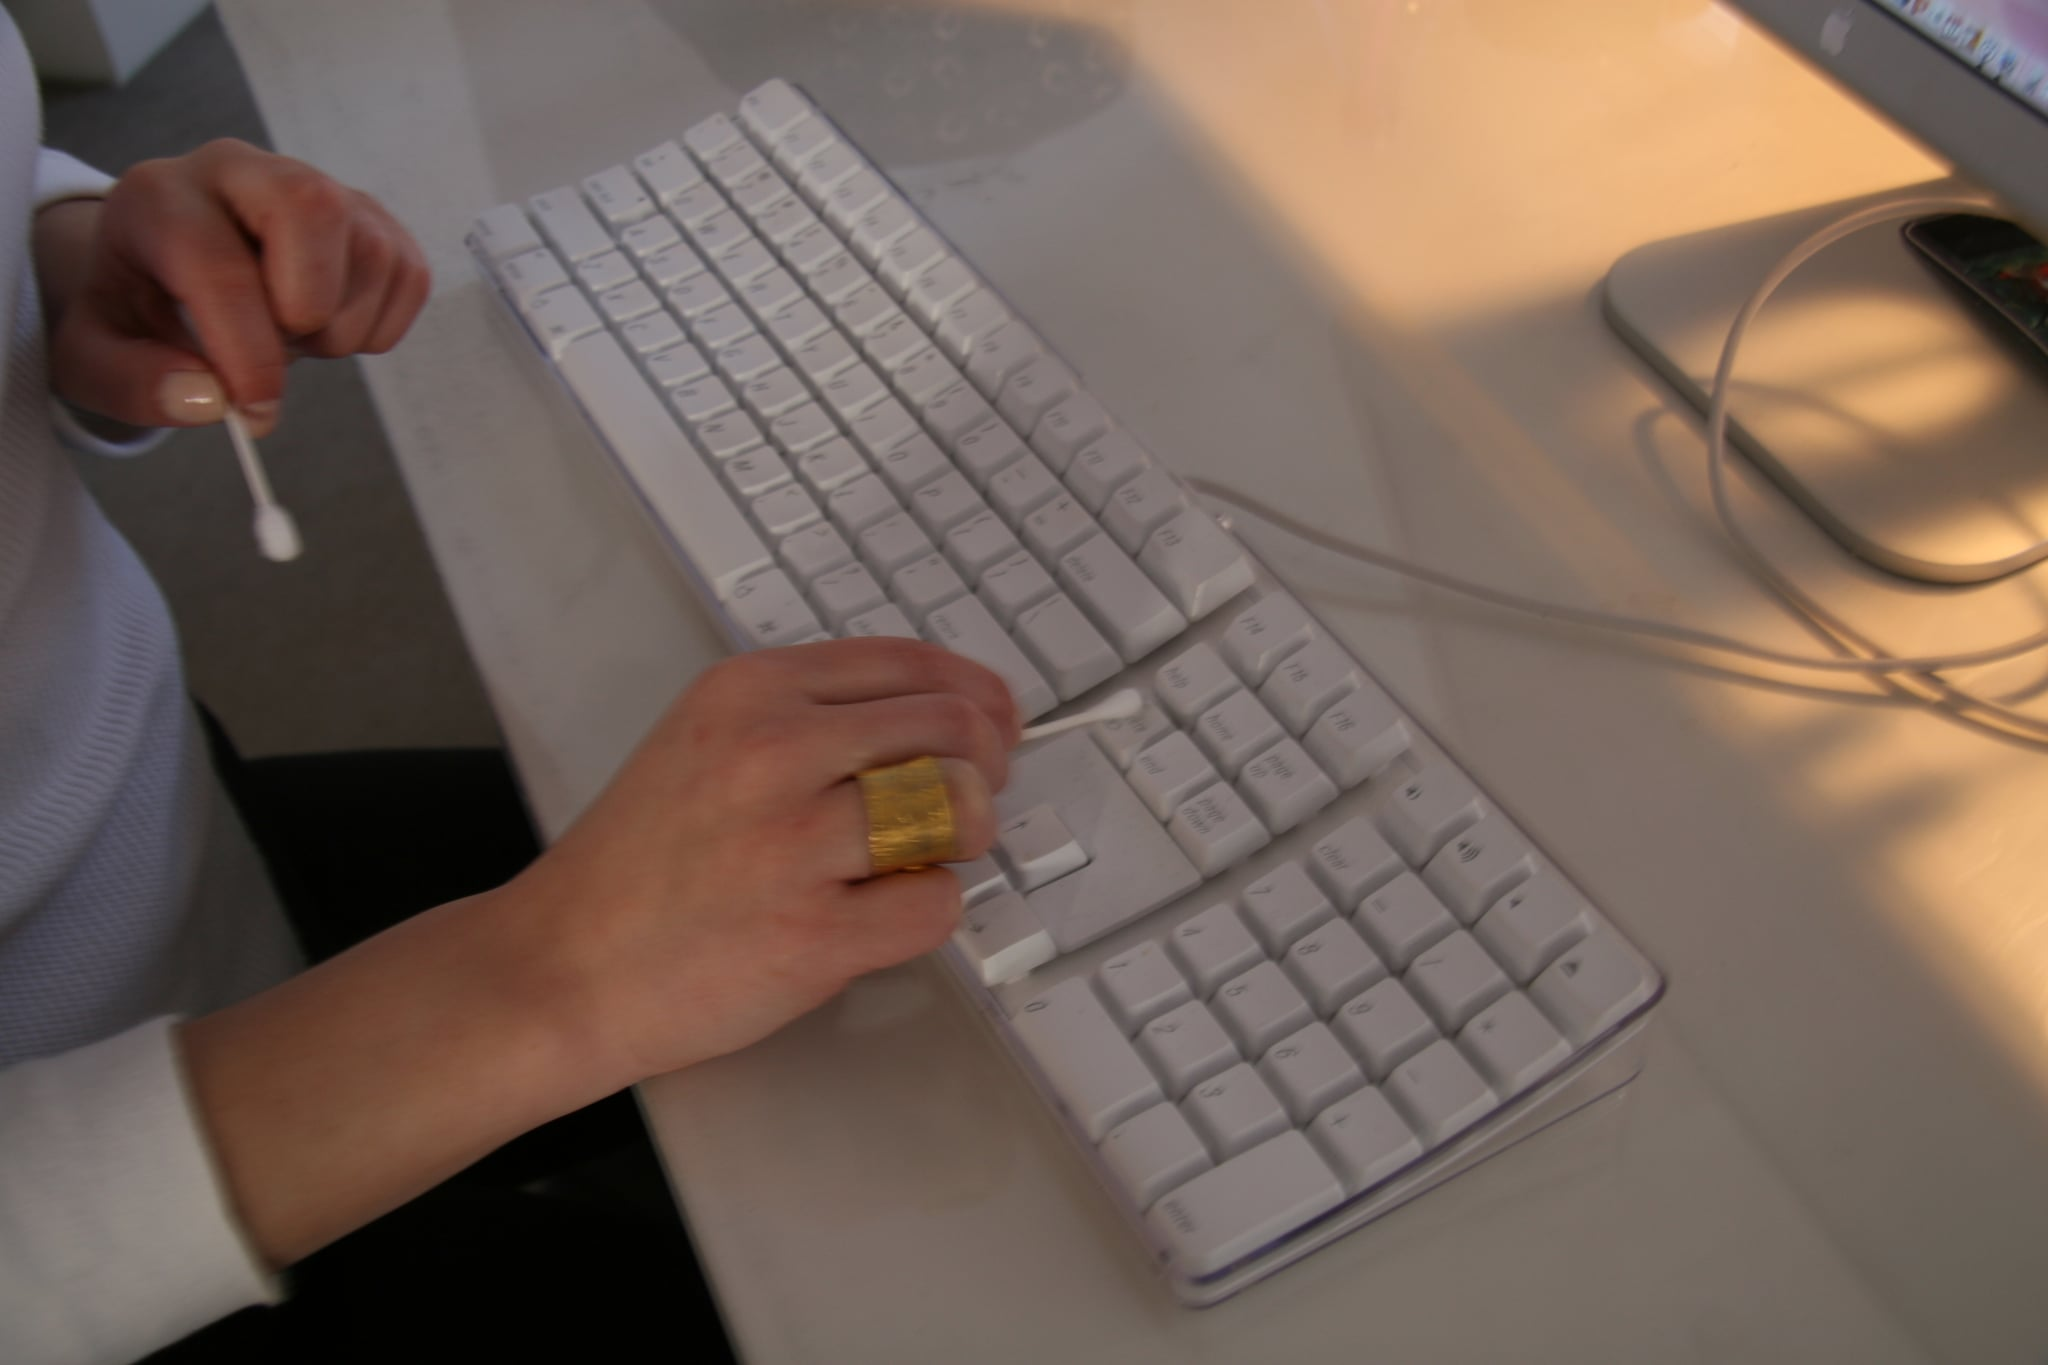 How To Clean Your Keyboard